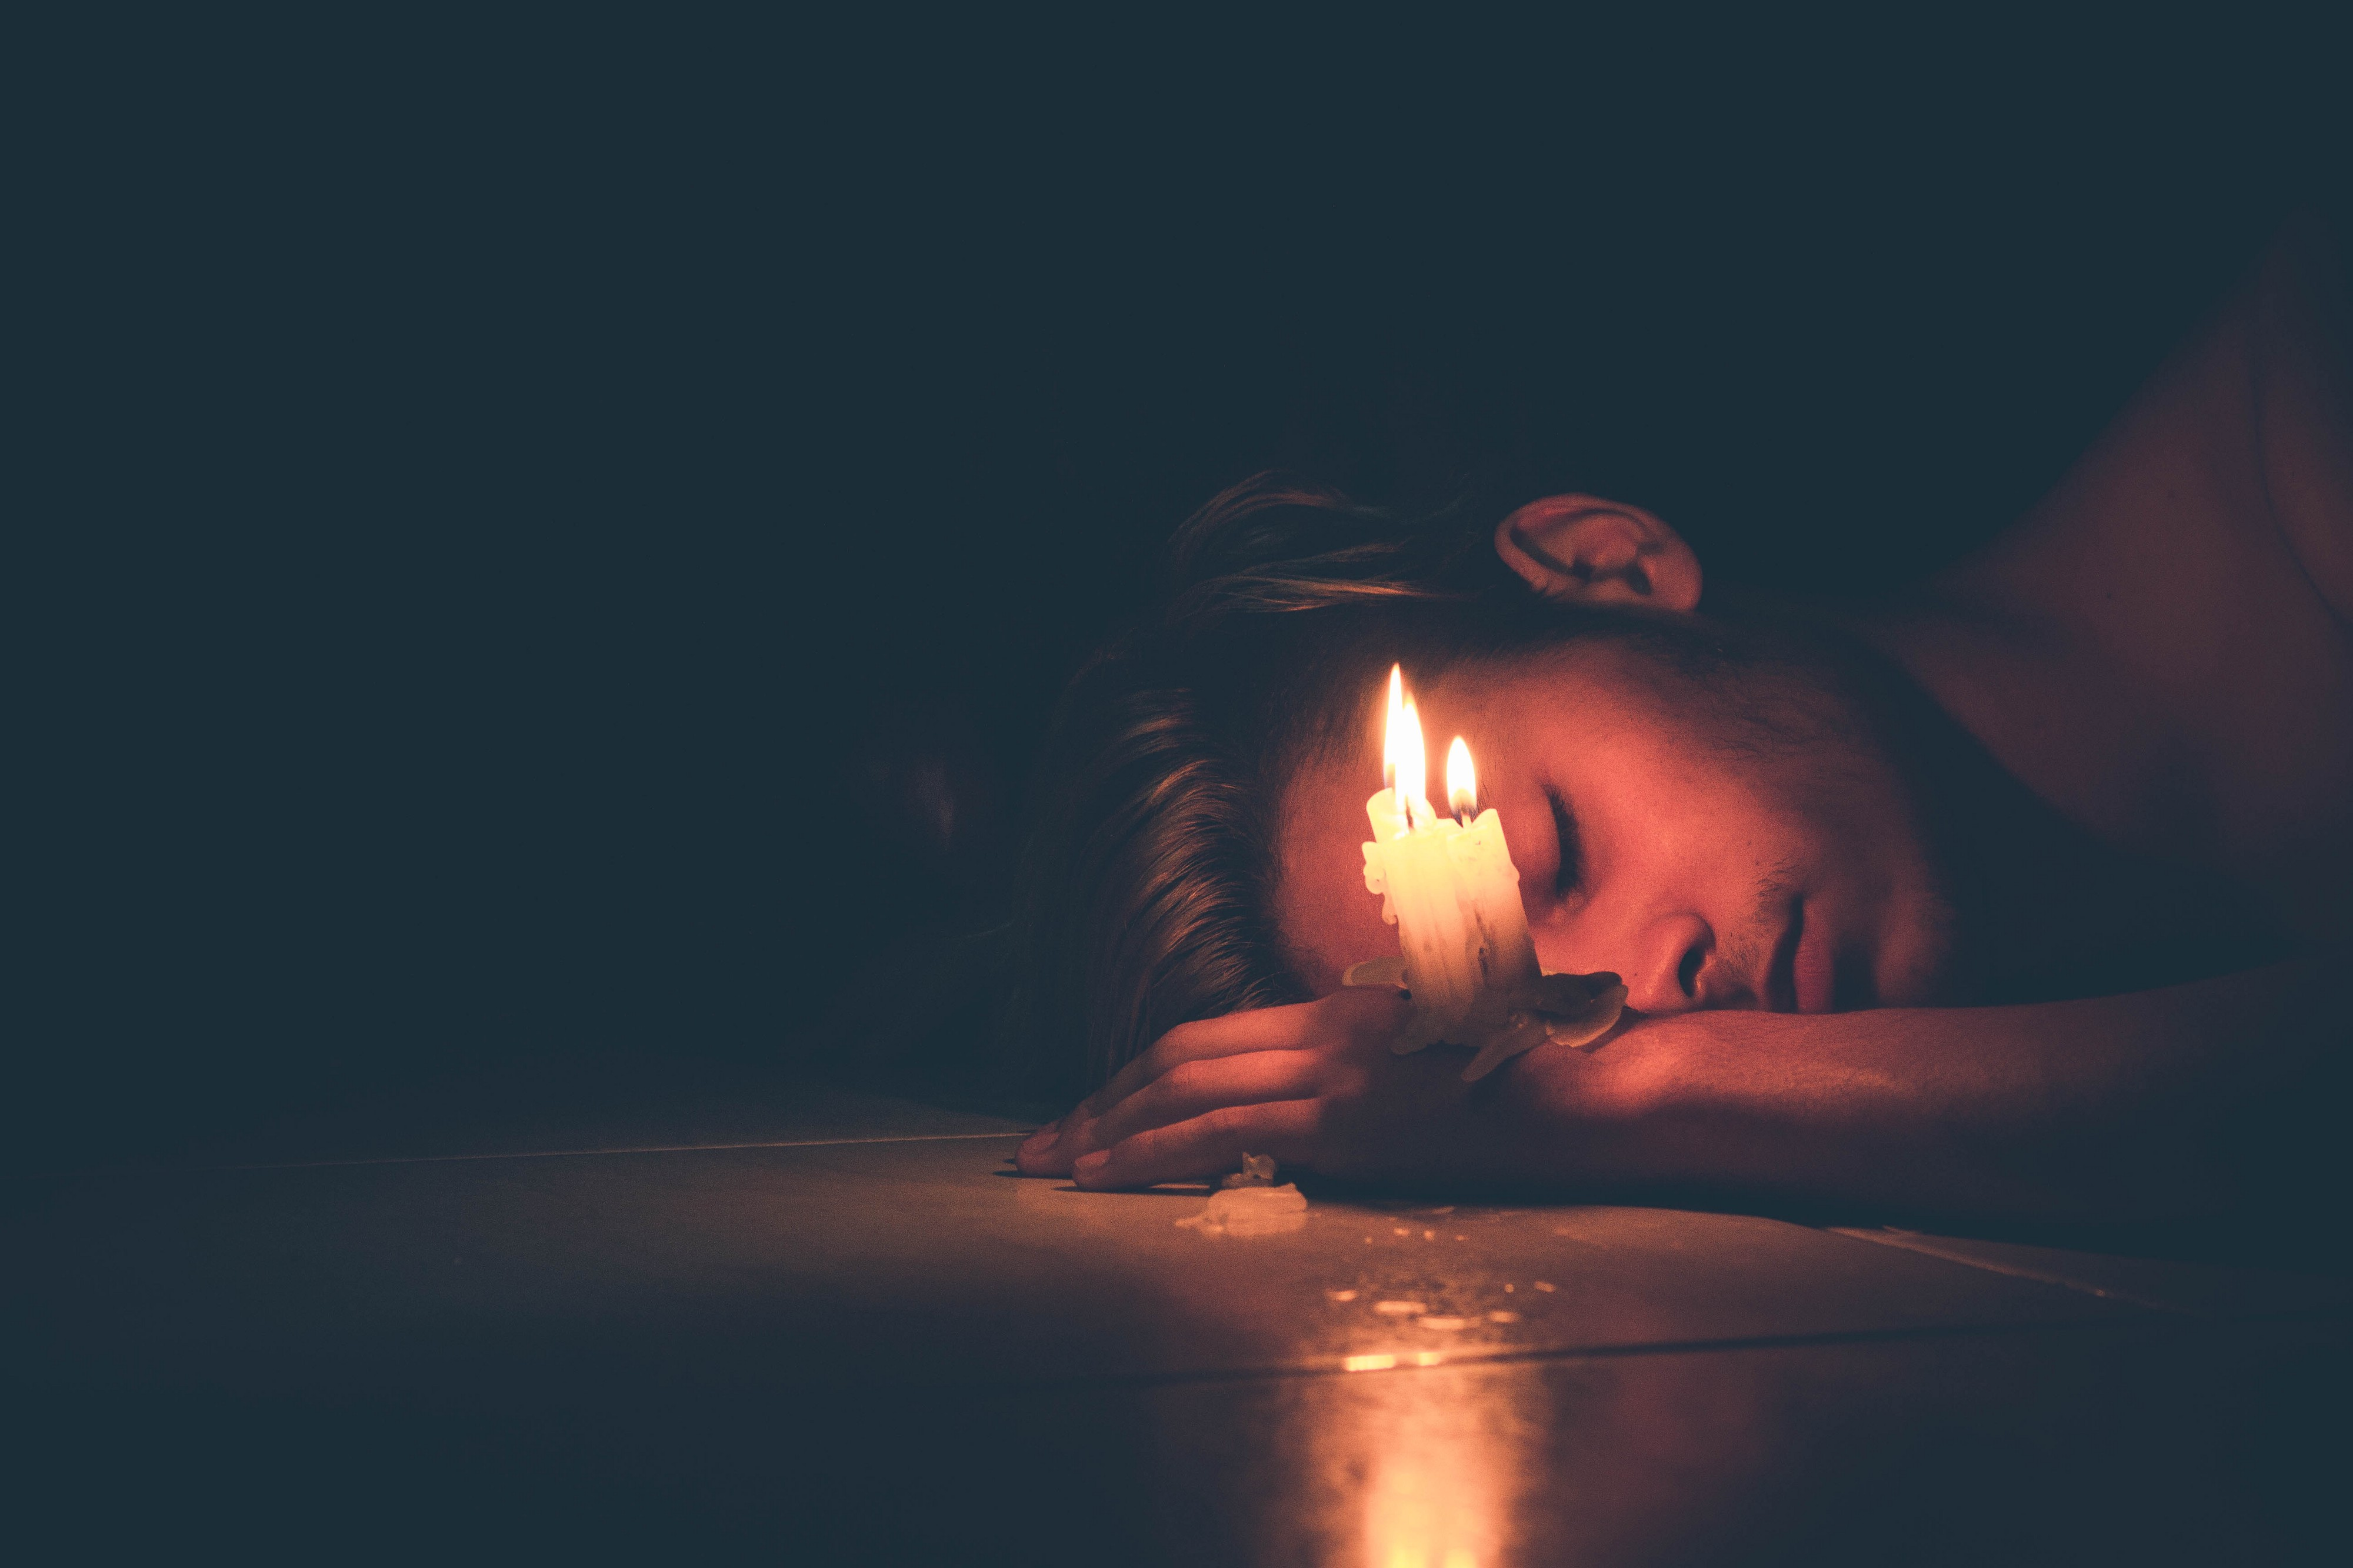 A sleeping woman holds a burning candle